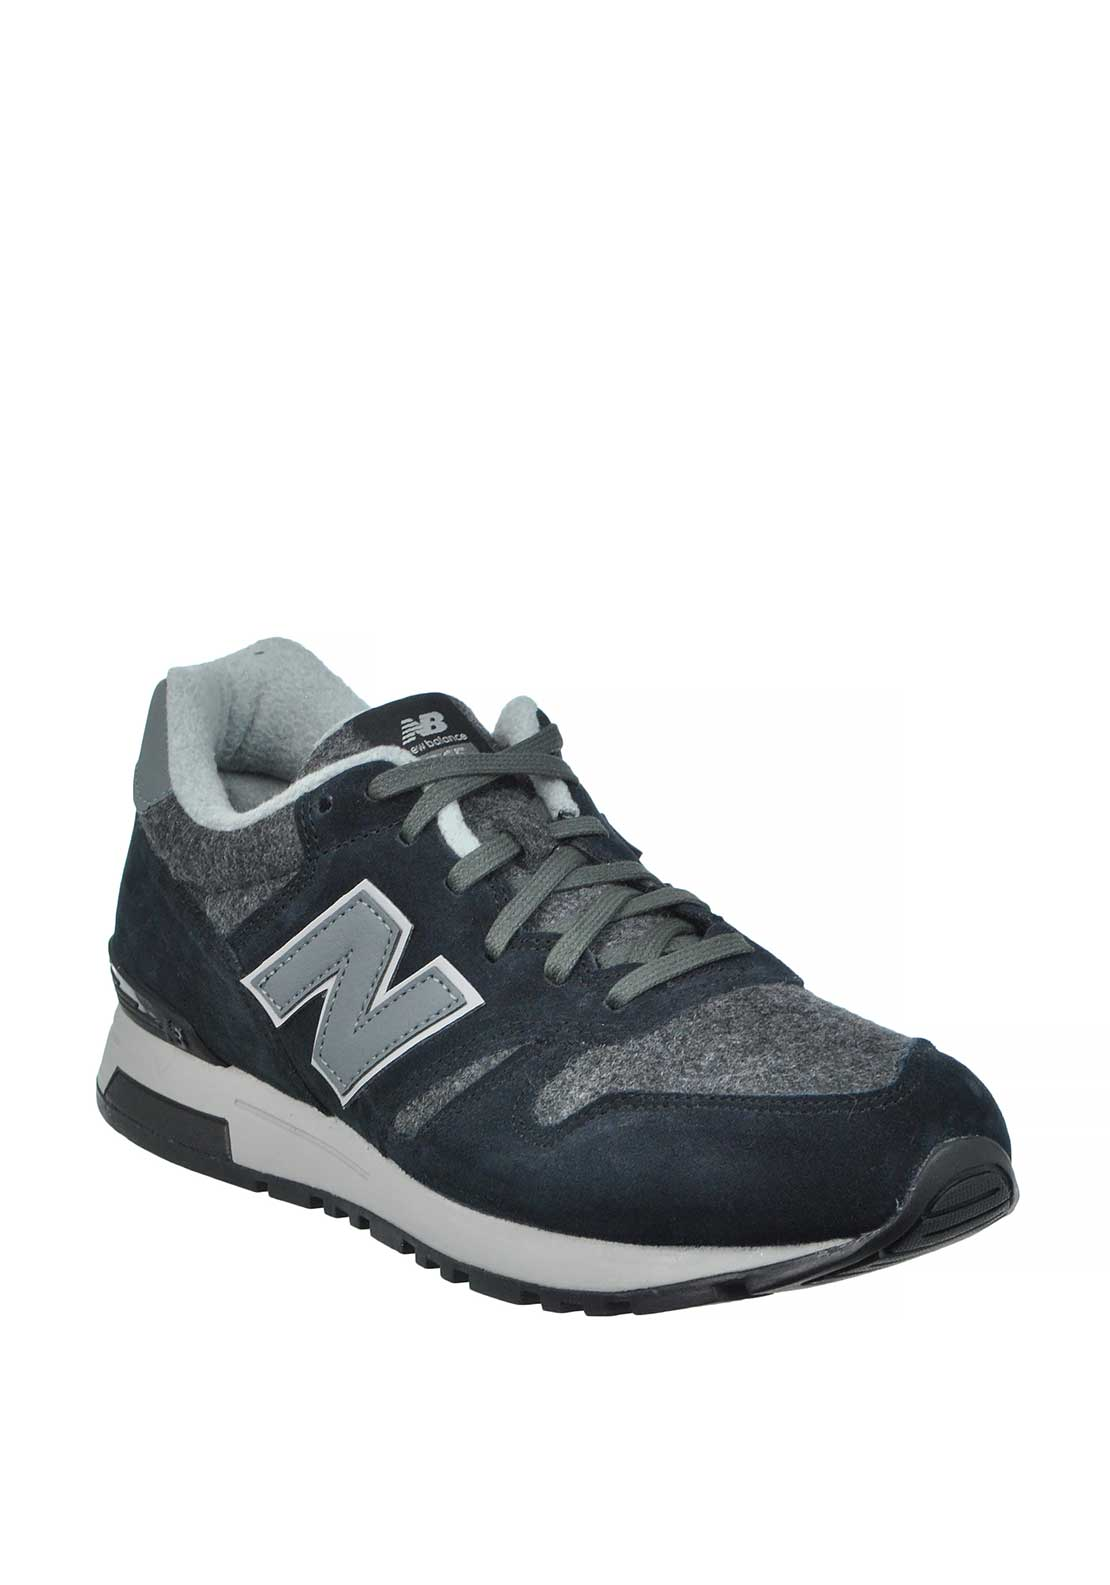 New Balance Mens 565 Fashion Runners, Black and Grey